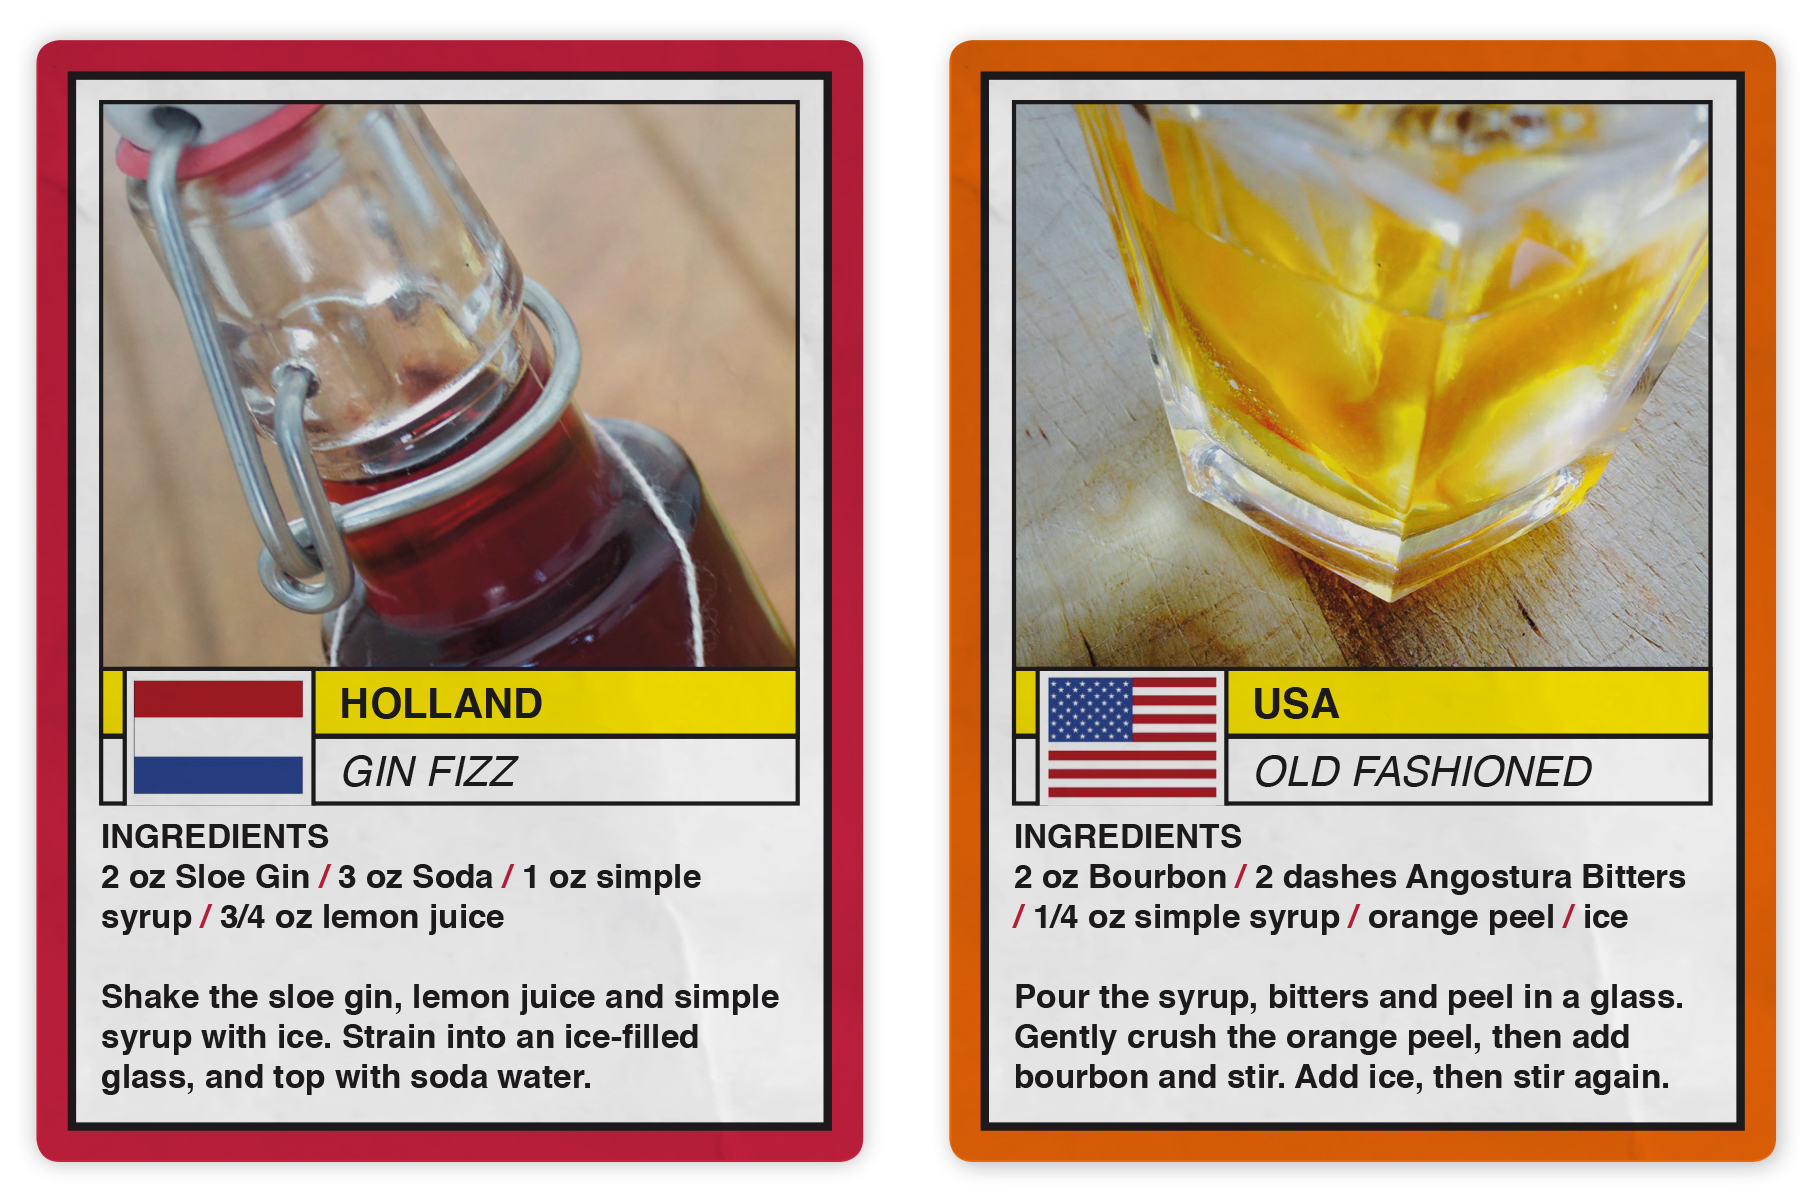 Holland_USA recipe sticker